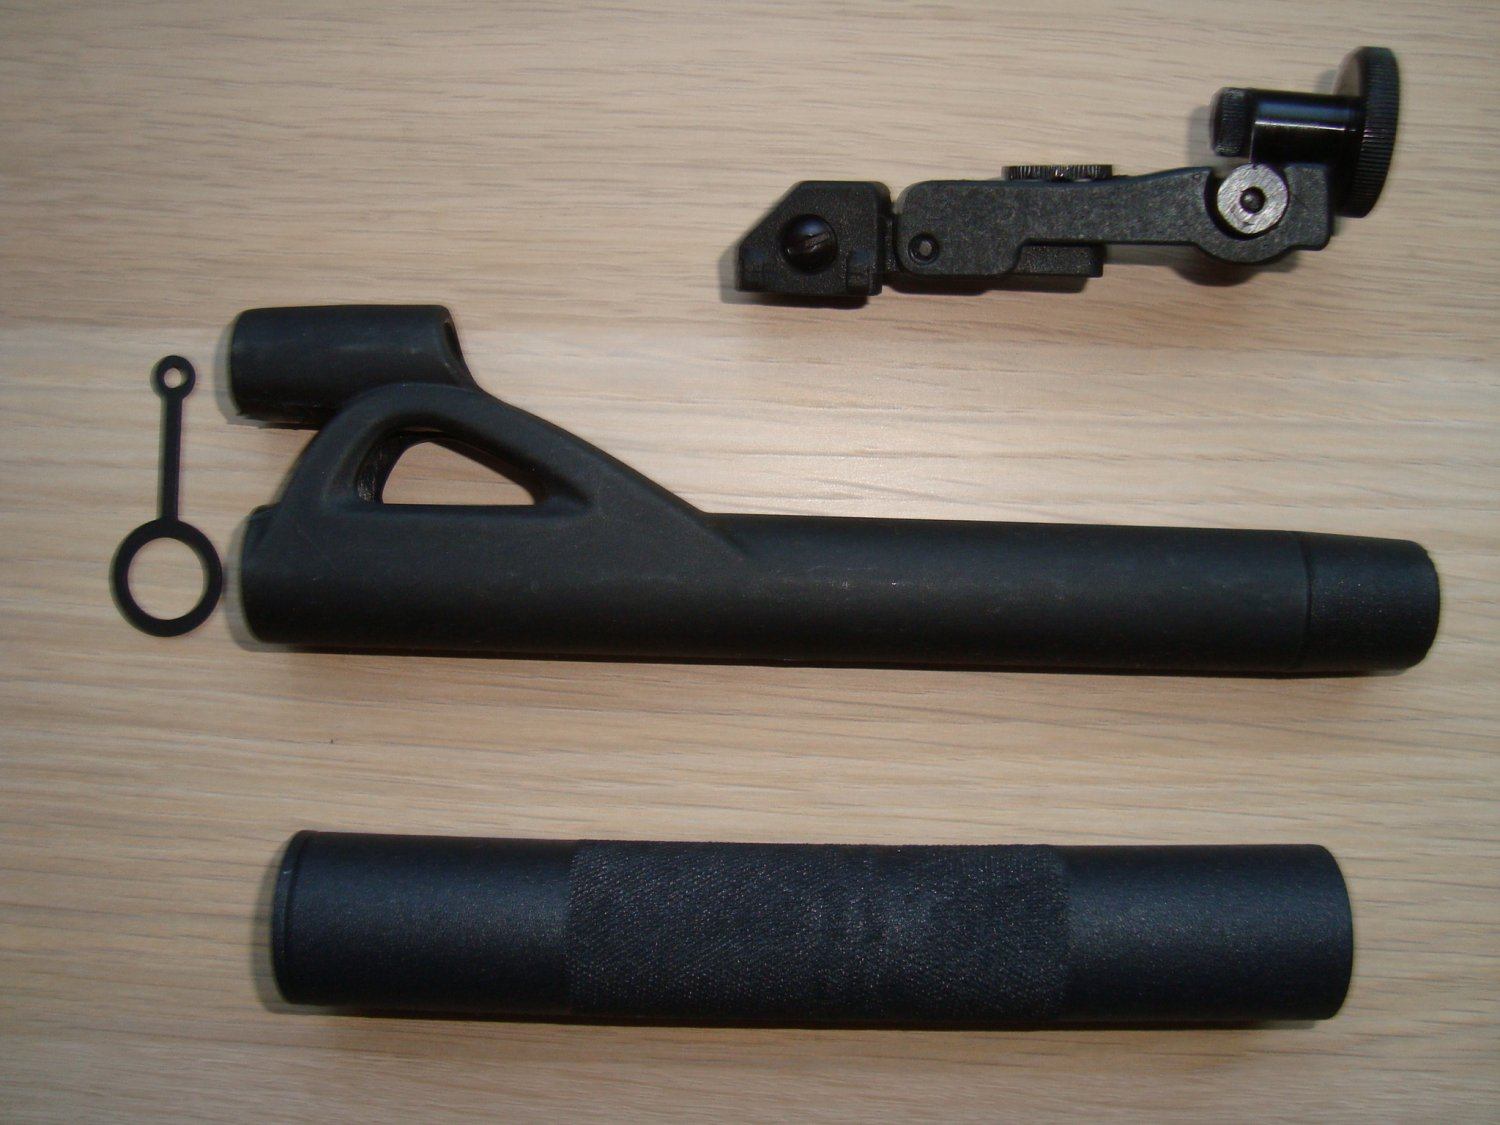 mp-61 sight aim parts Baikal tuning with durable fixed weighting agent for upgrade.